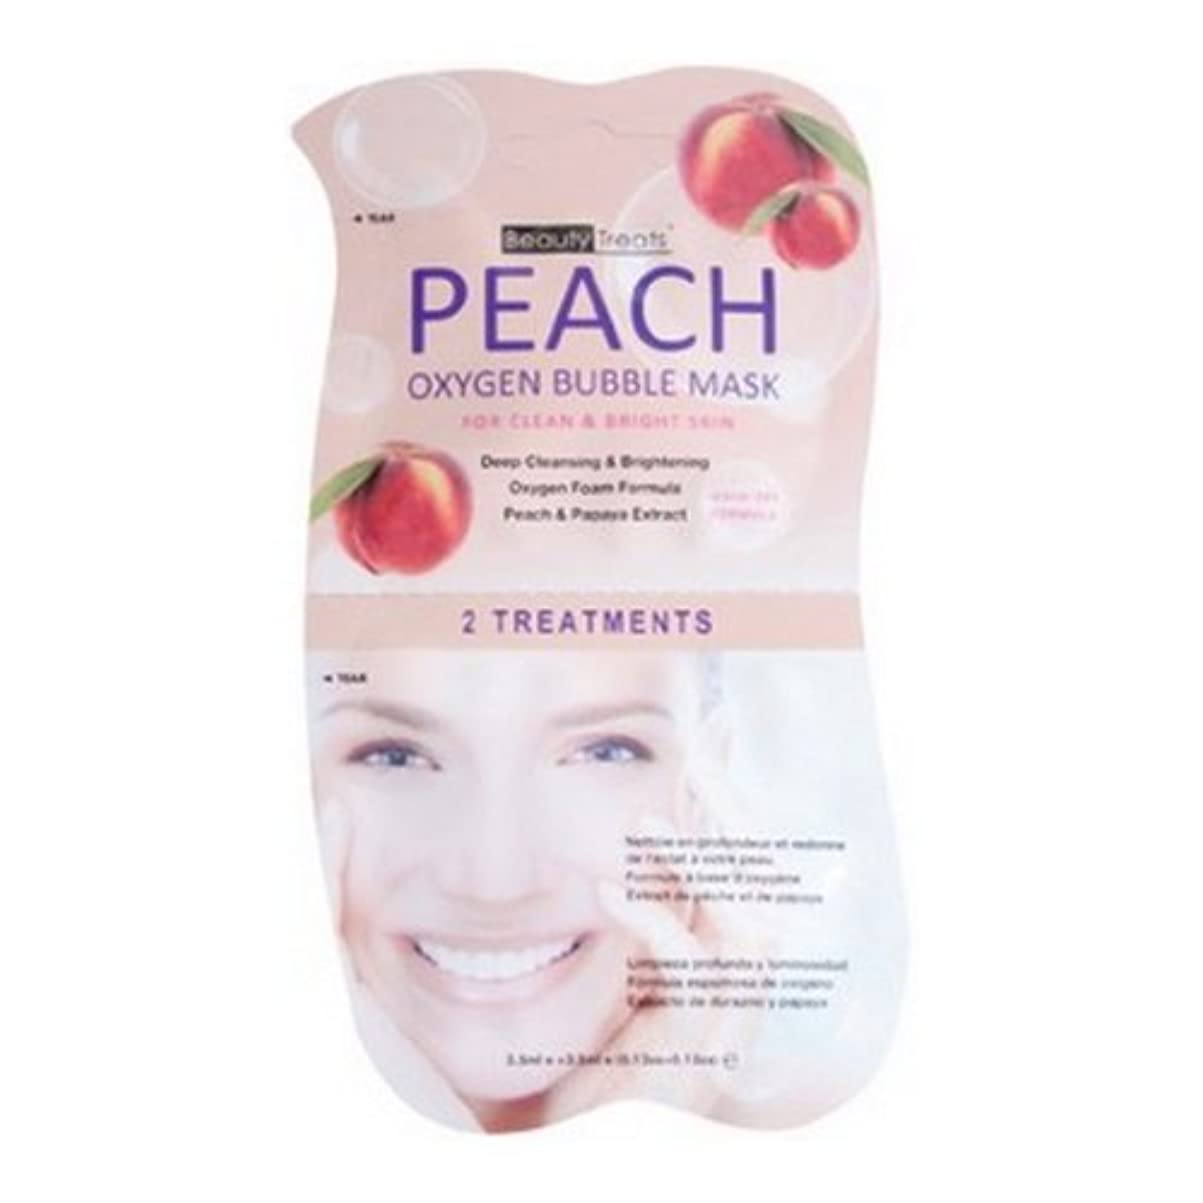 韓国ドライ二層(6 Pack) BEAUTY TREATS Peach Oxygen Bubble Mask - Peach (並行輸入品)